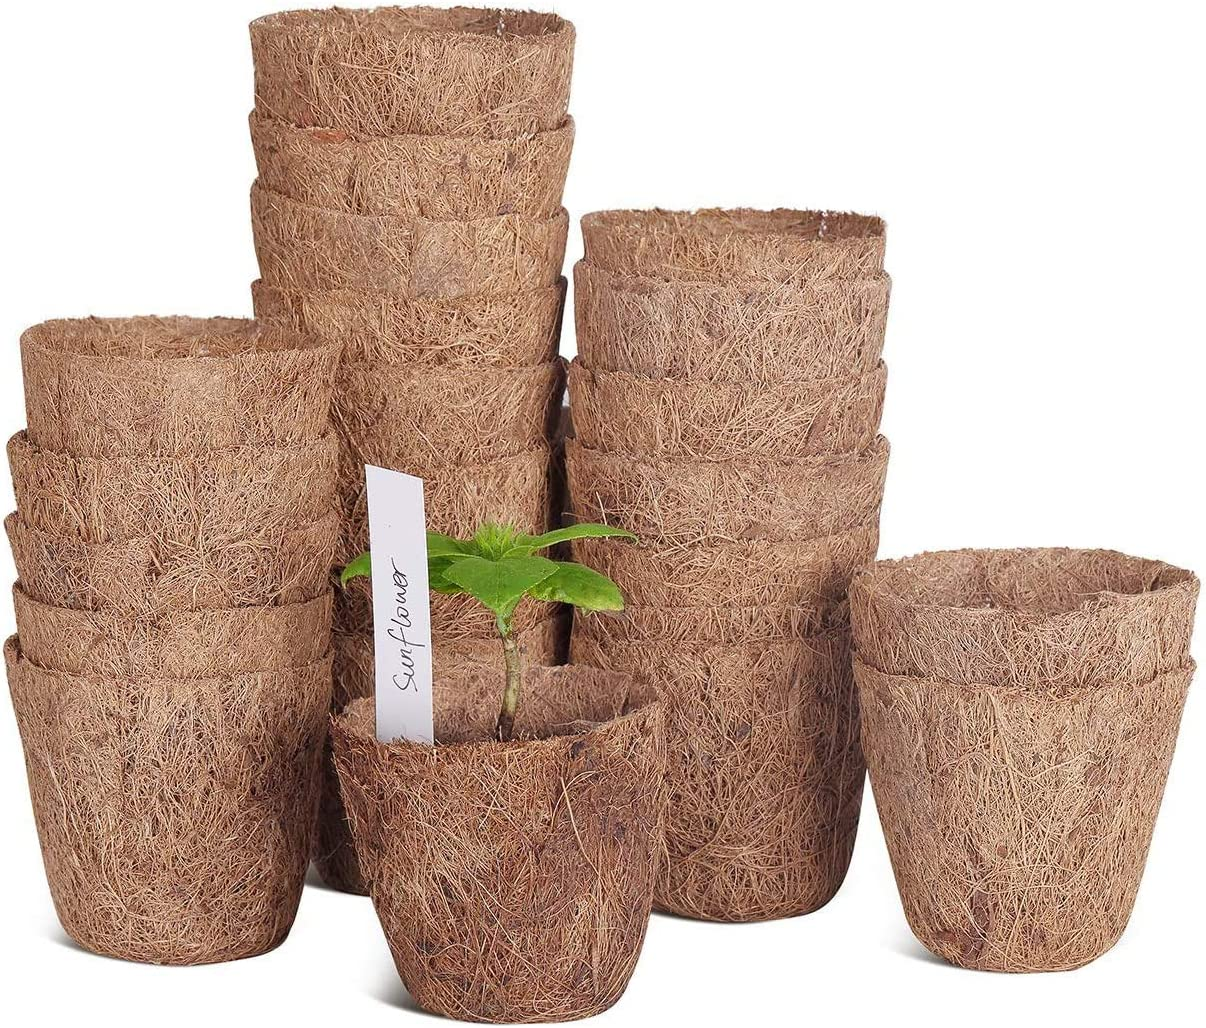 "SOLIGT 20 Pack of 3"" Coco Coir Seed Starter Pots, Sustainable & Biodegradable Pots Aternative to Peat Pots, Includes 10 Plastic Plant Markers"